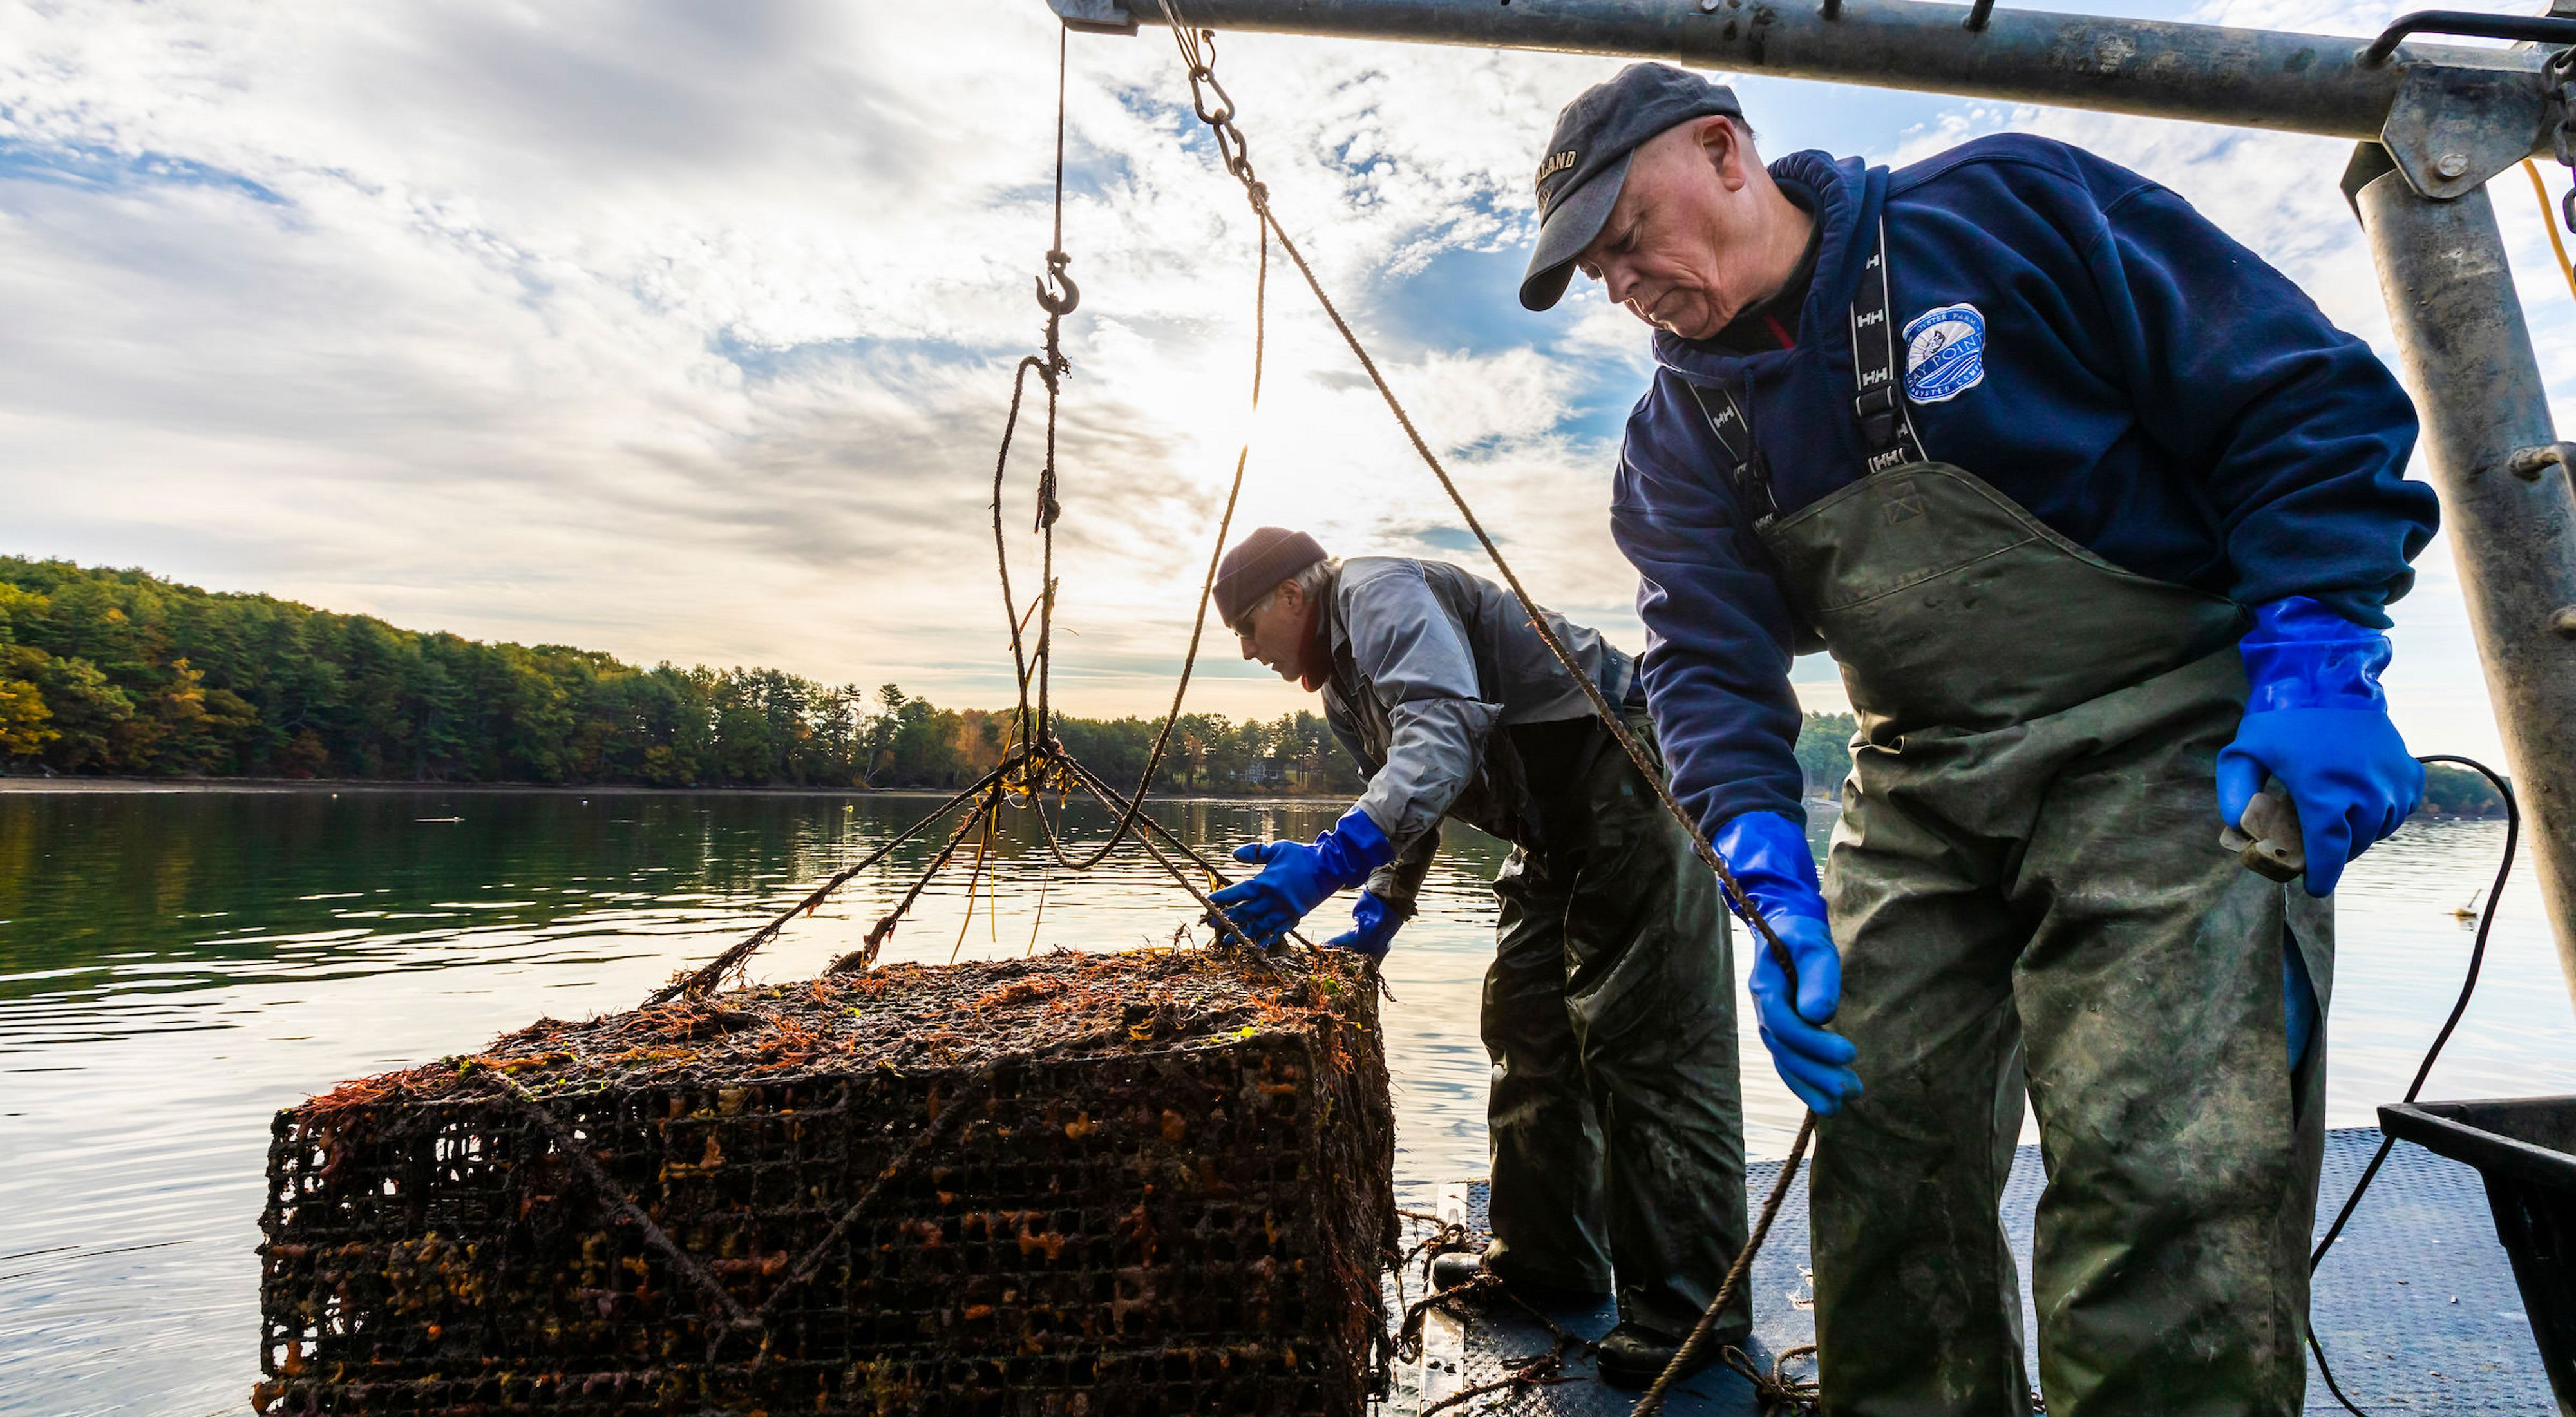 Two men on a boat haul up a rectangular oyster cage